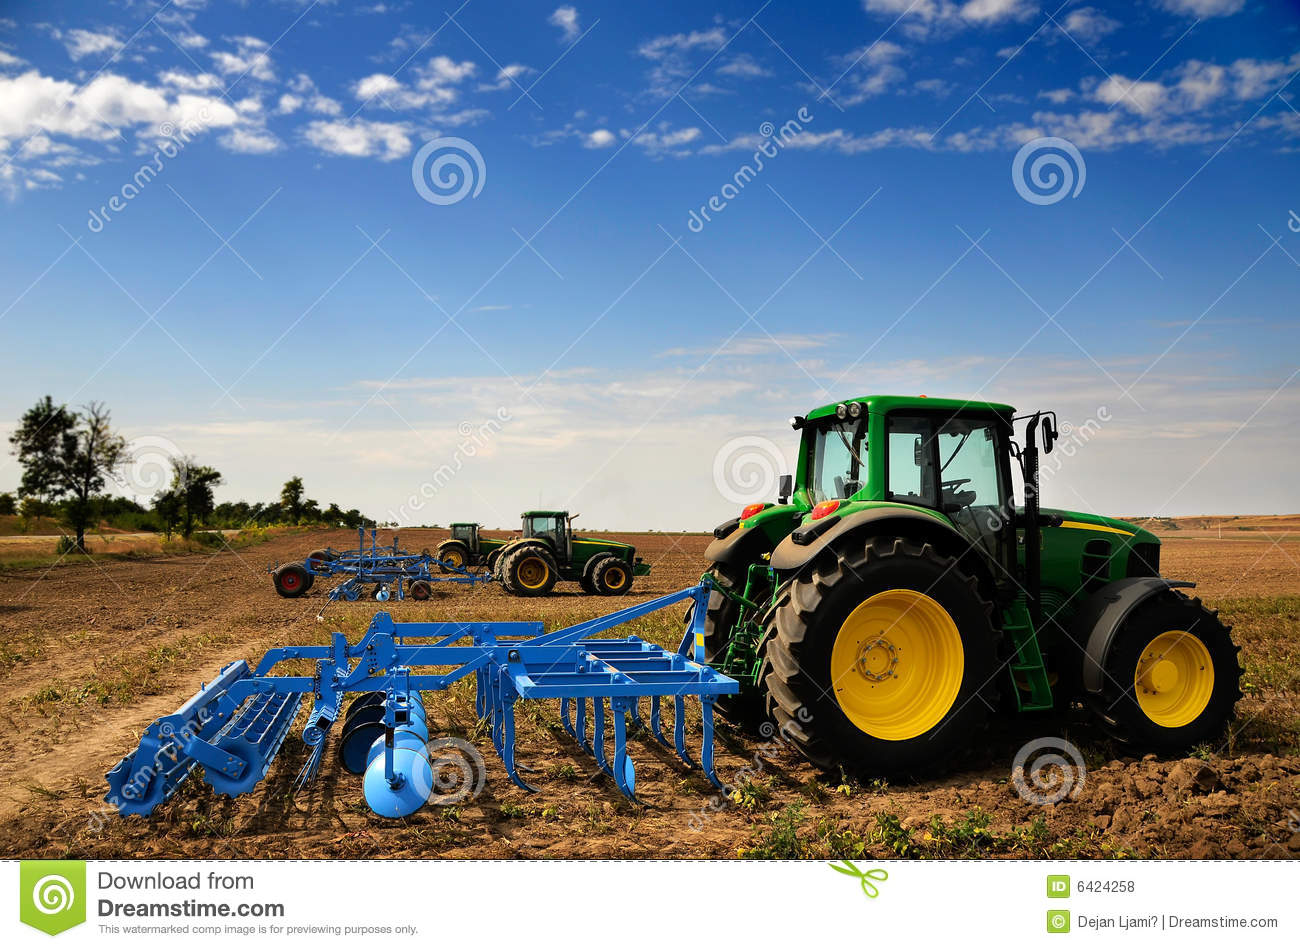 Agriculture clipart commercial agriculture.  collection of modern